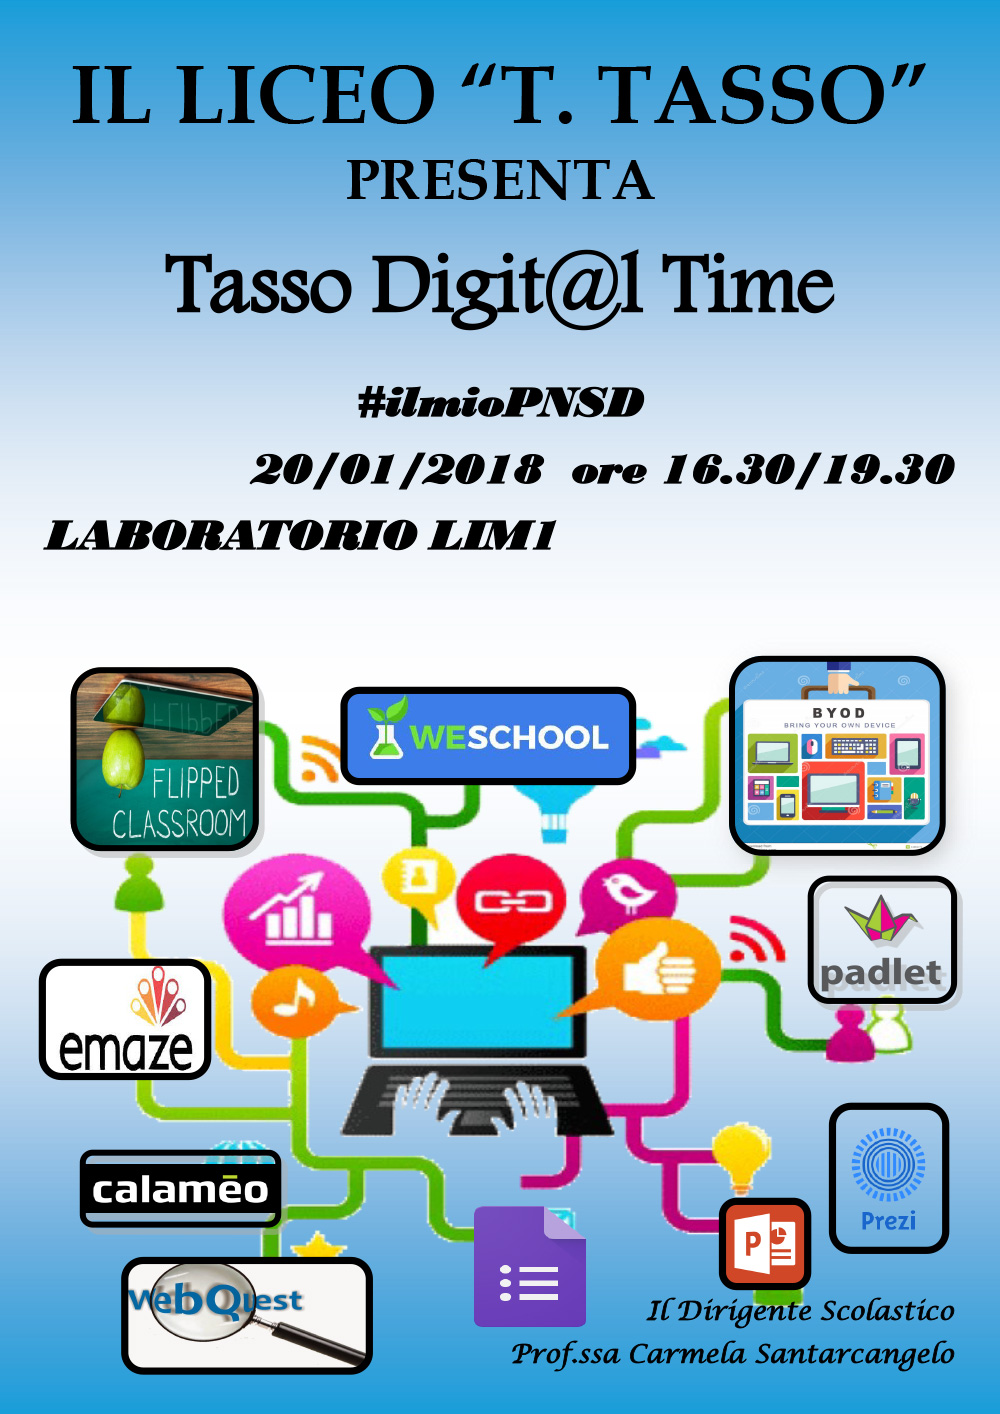 DigitalTime